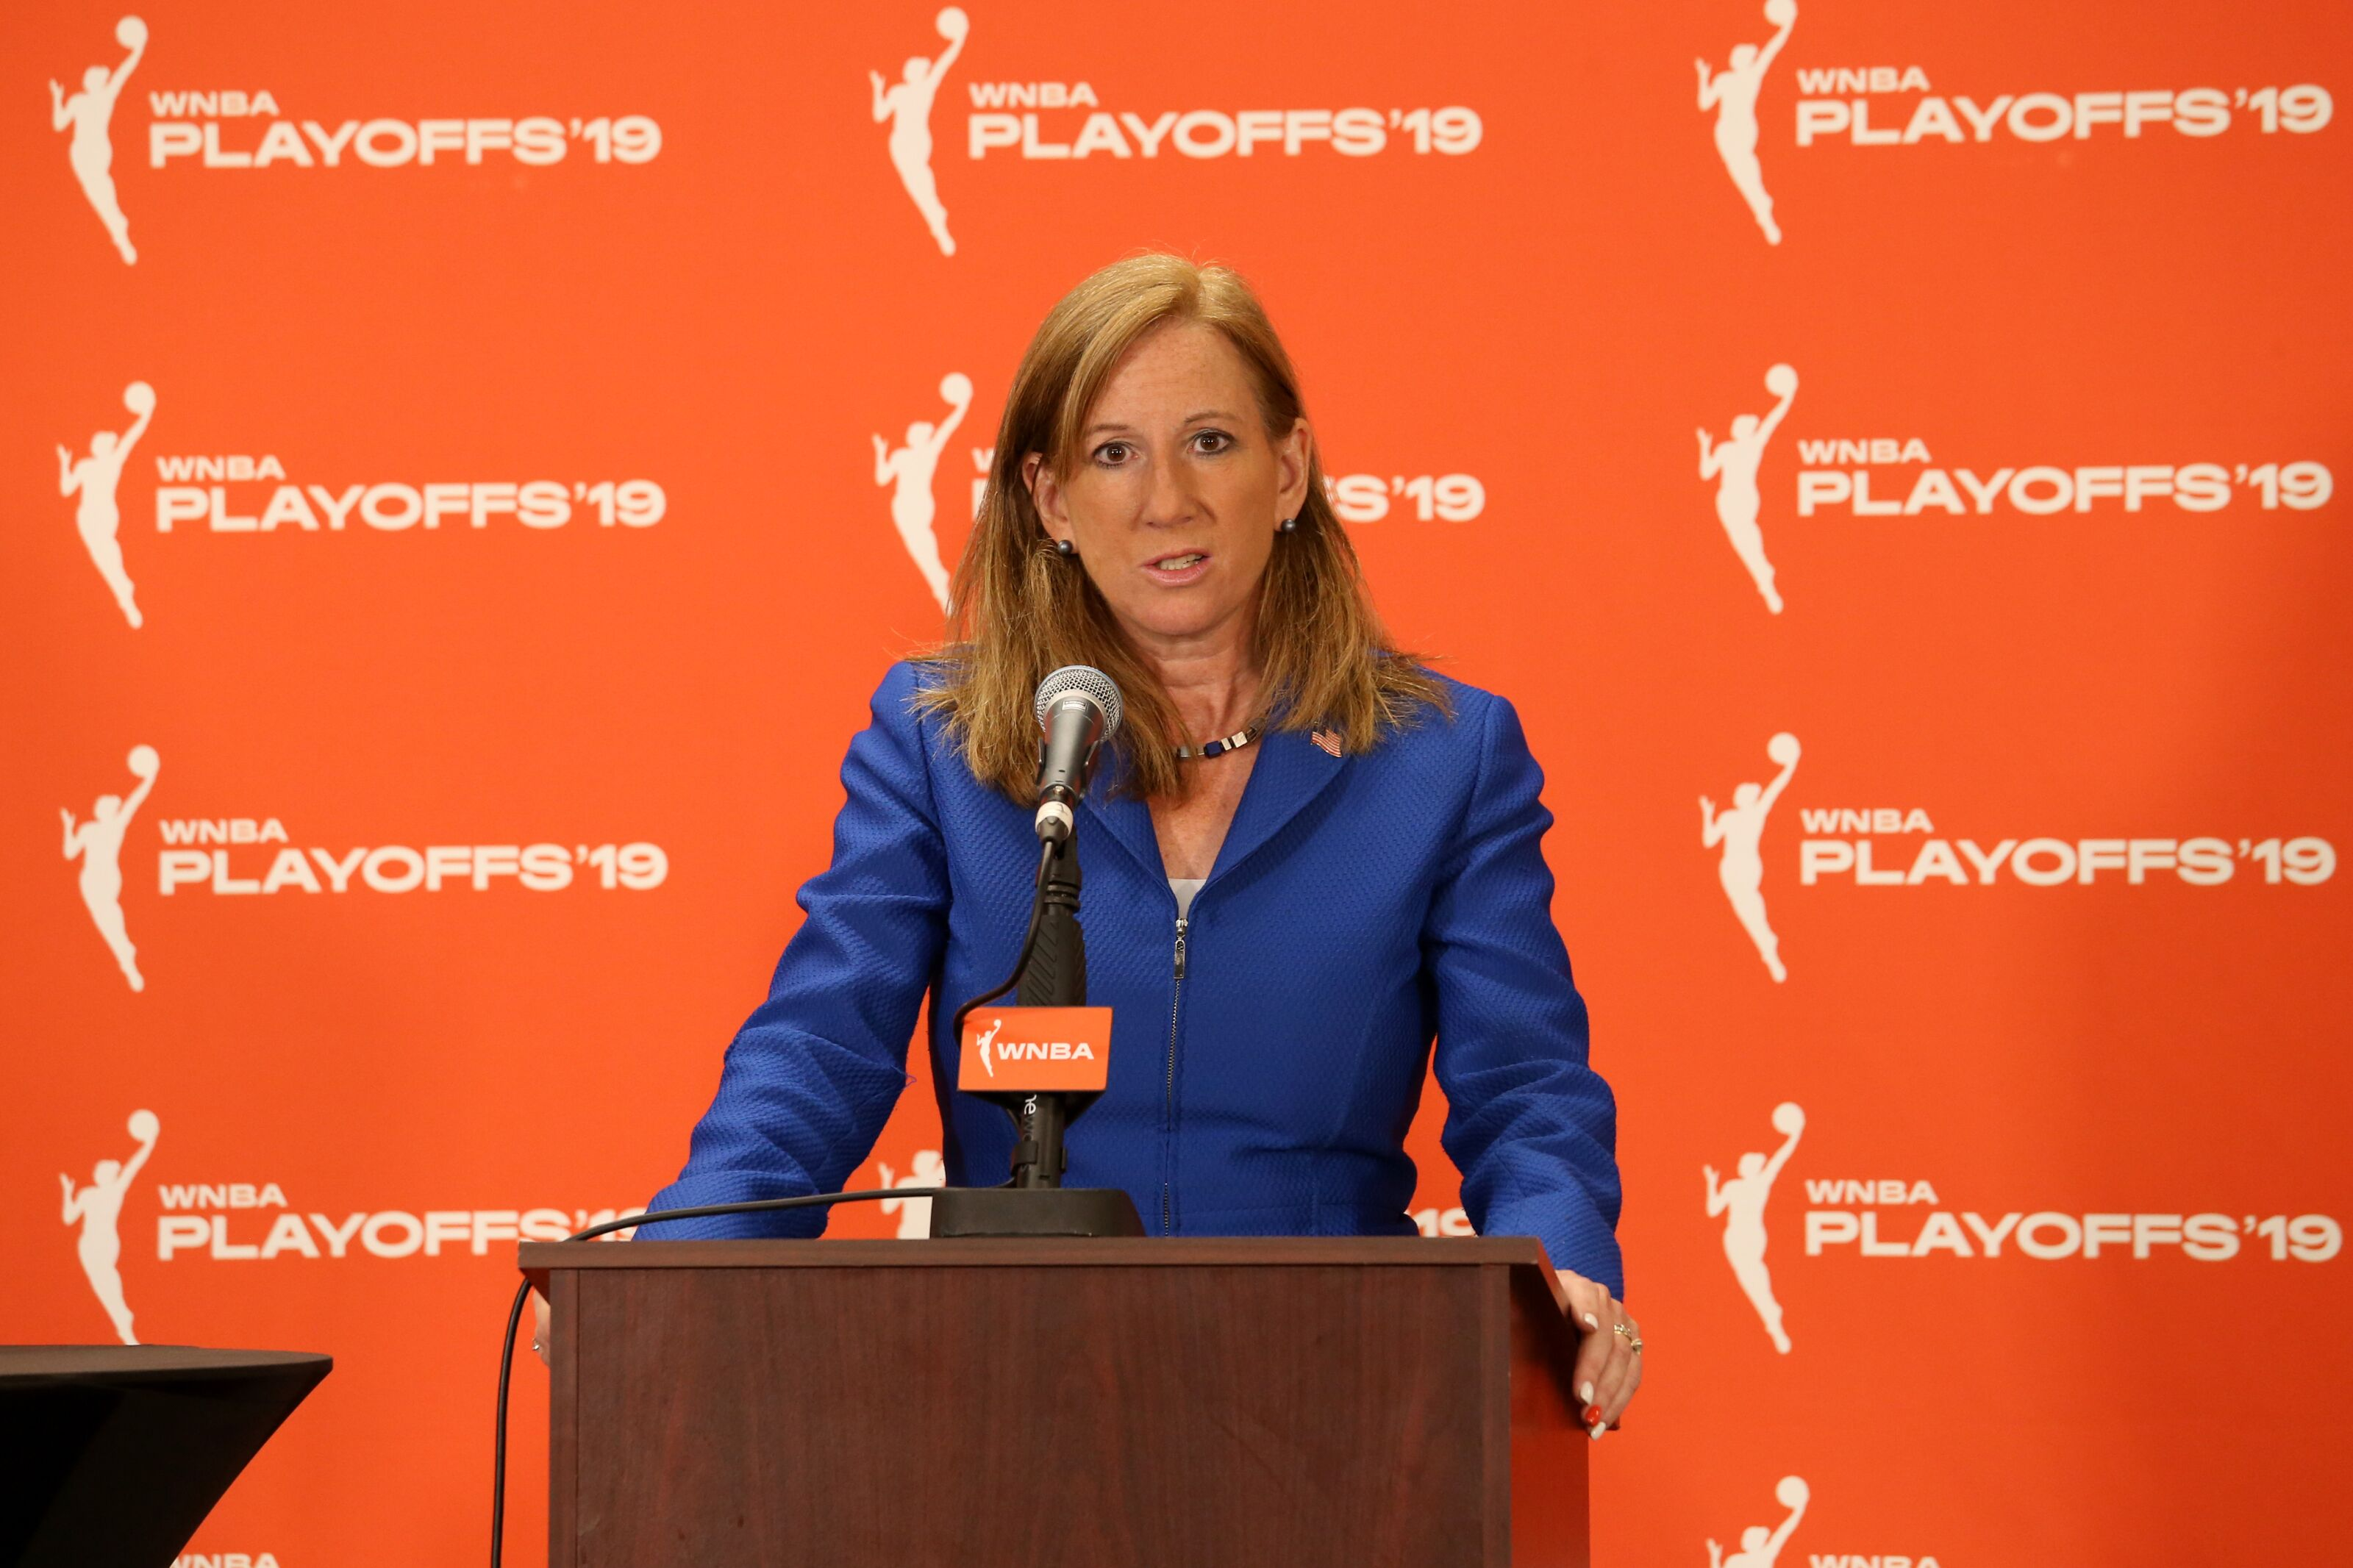 Analysis of the full WNBA CBA. What does it really say?